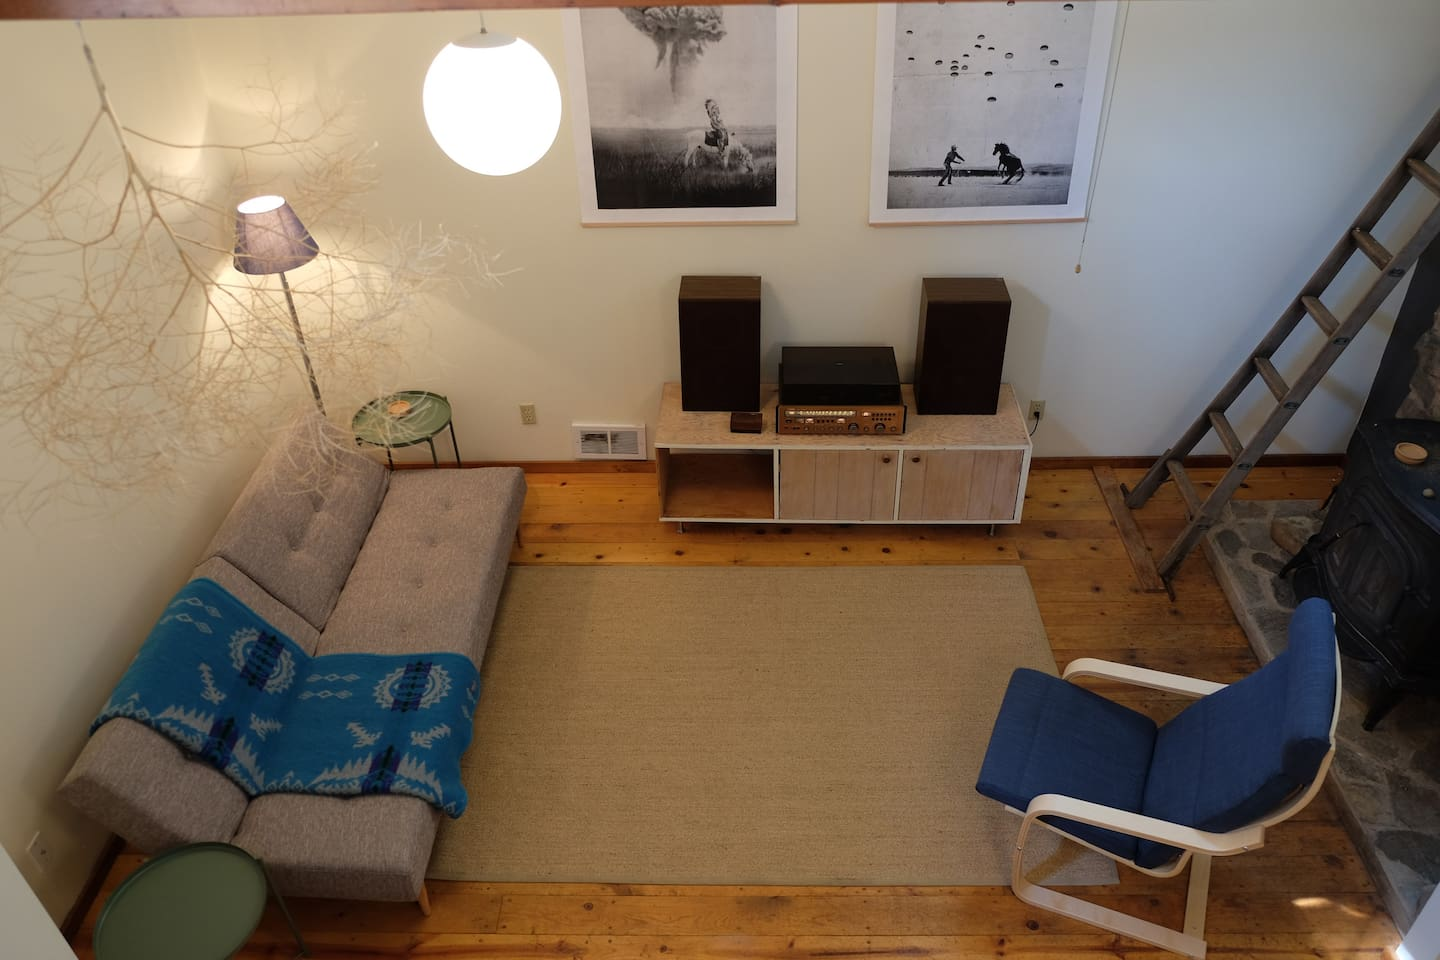 Roomy central living space with a fold out couch, table for 8, a fireplace and a record player.